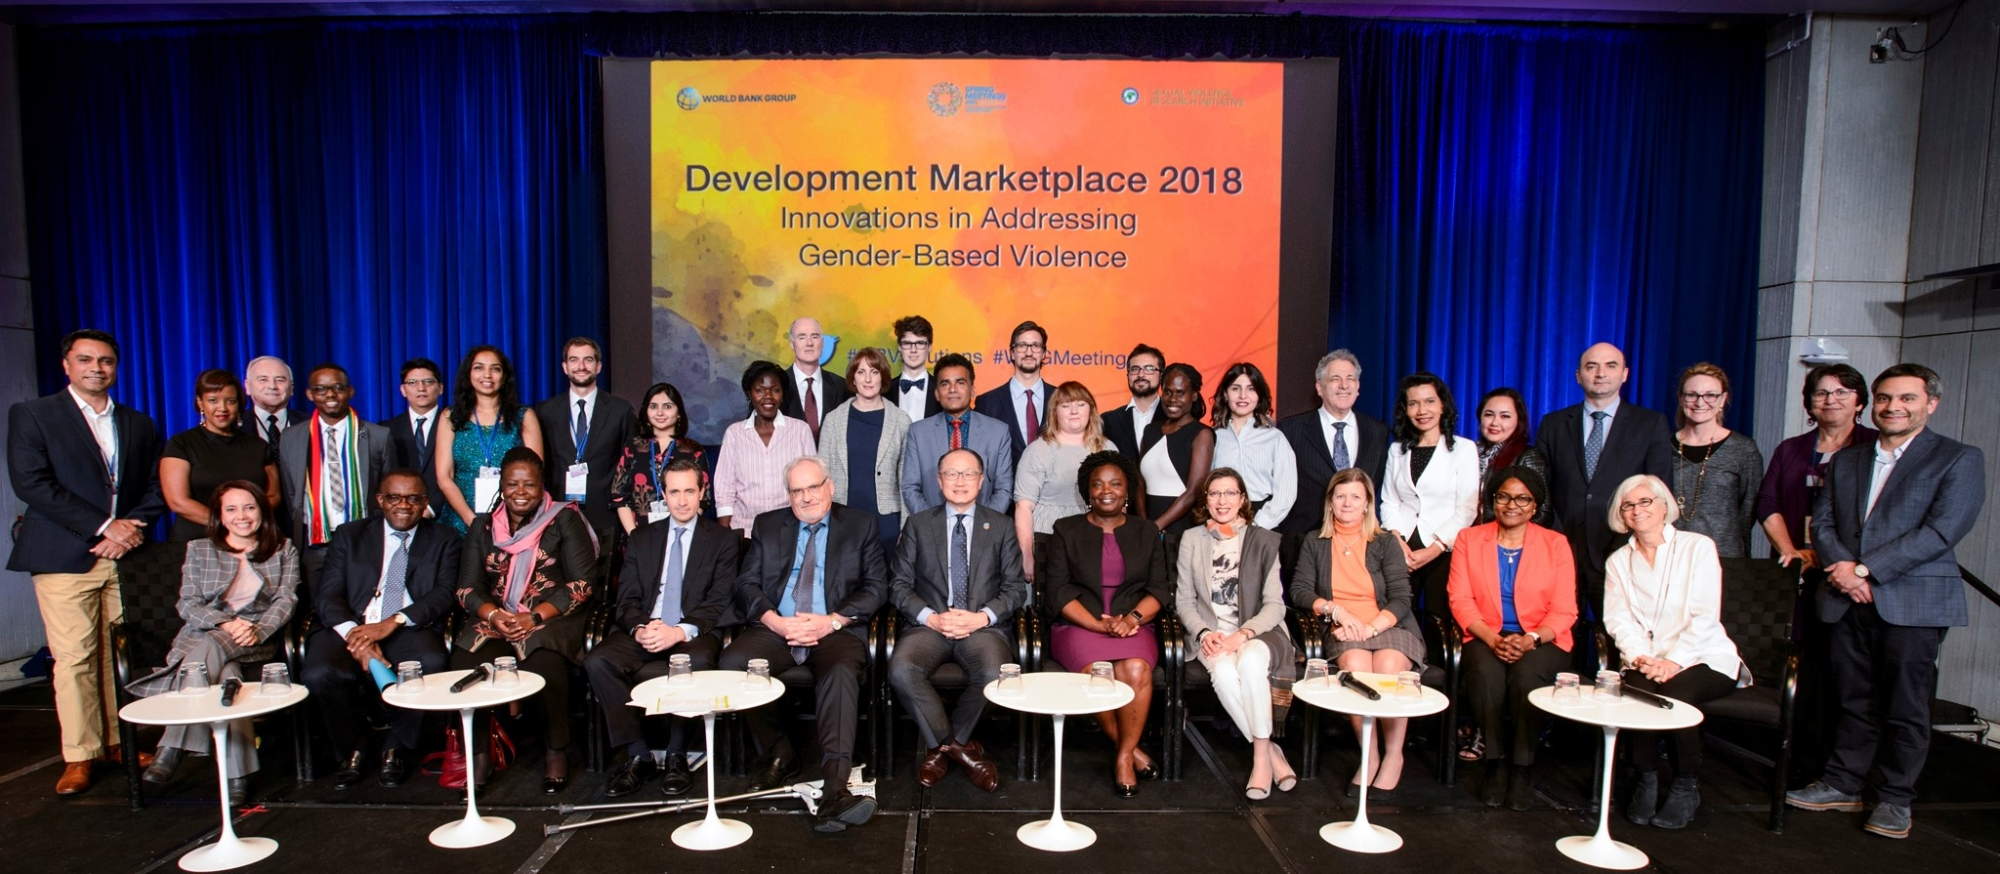 Group photo at the Development Marketplace